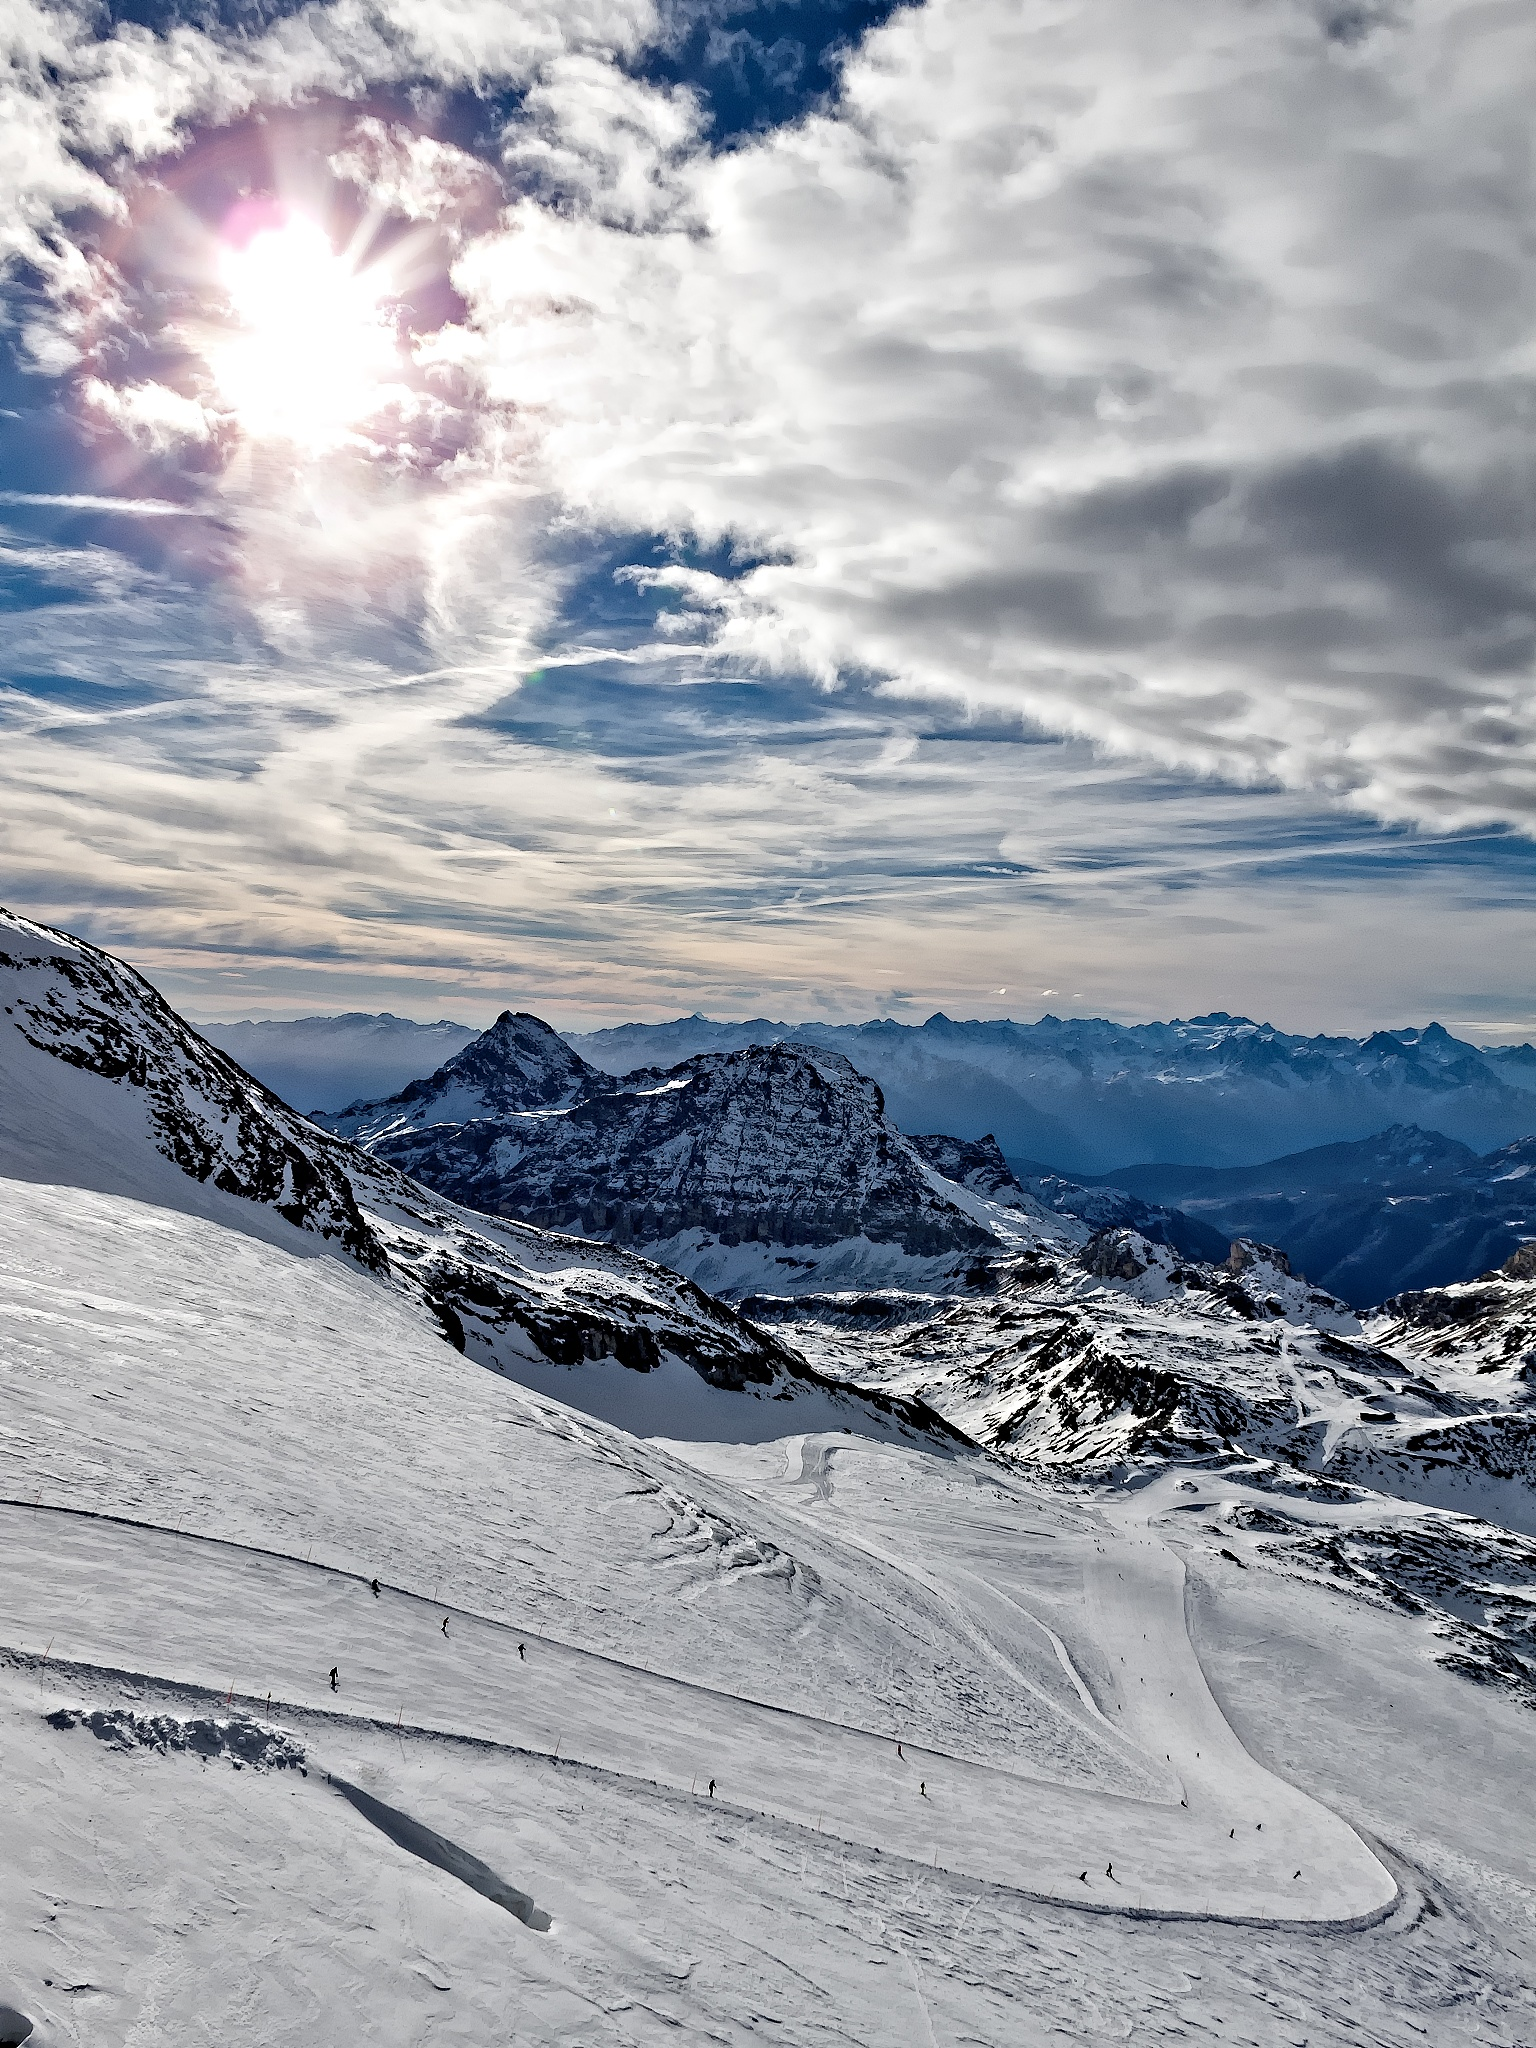 It's all about skiing! by Herbert Stachelberger